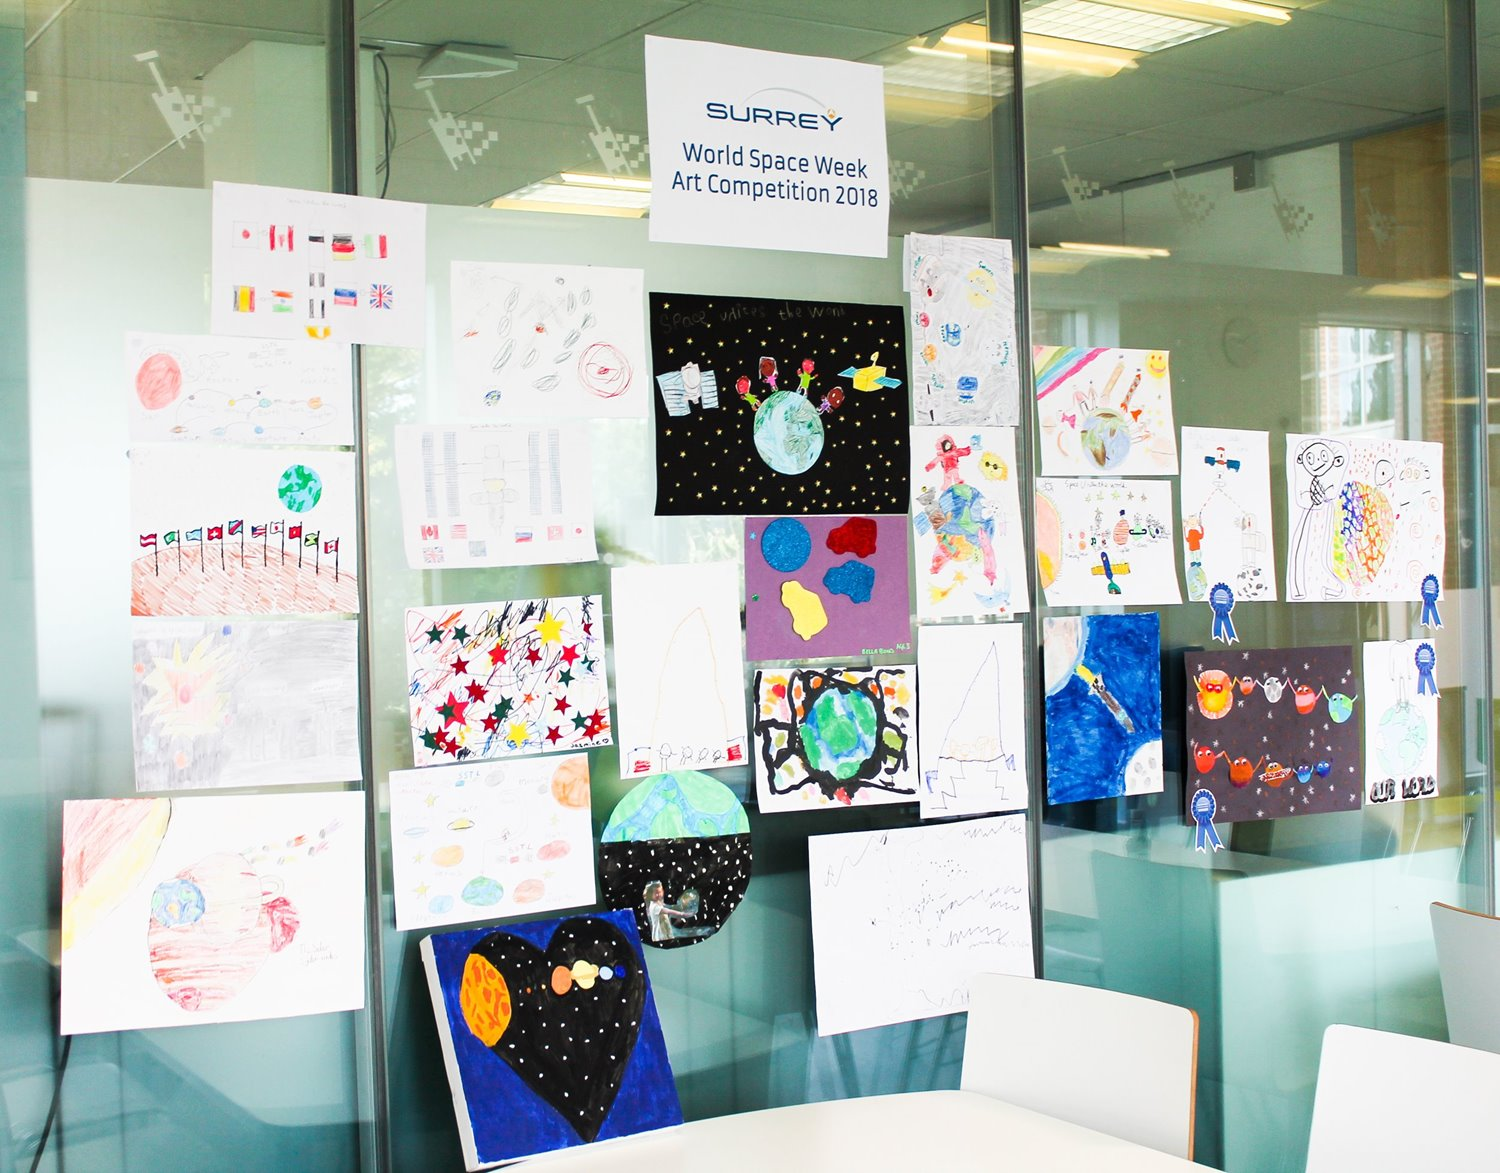 World Space Week Art Competition 2018